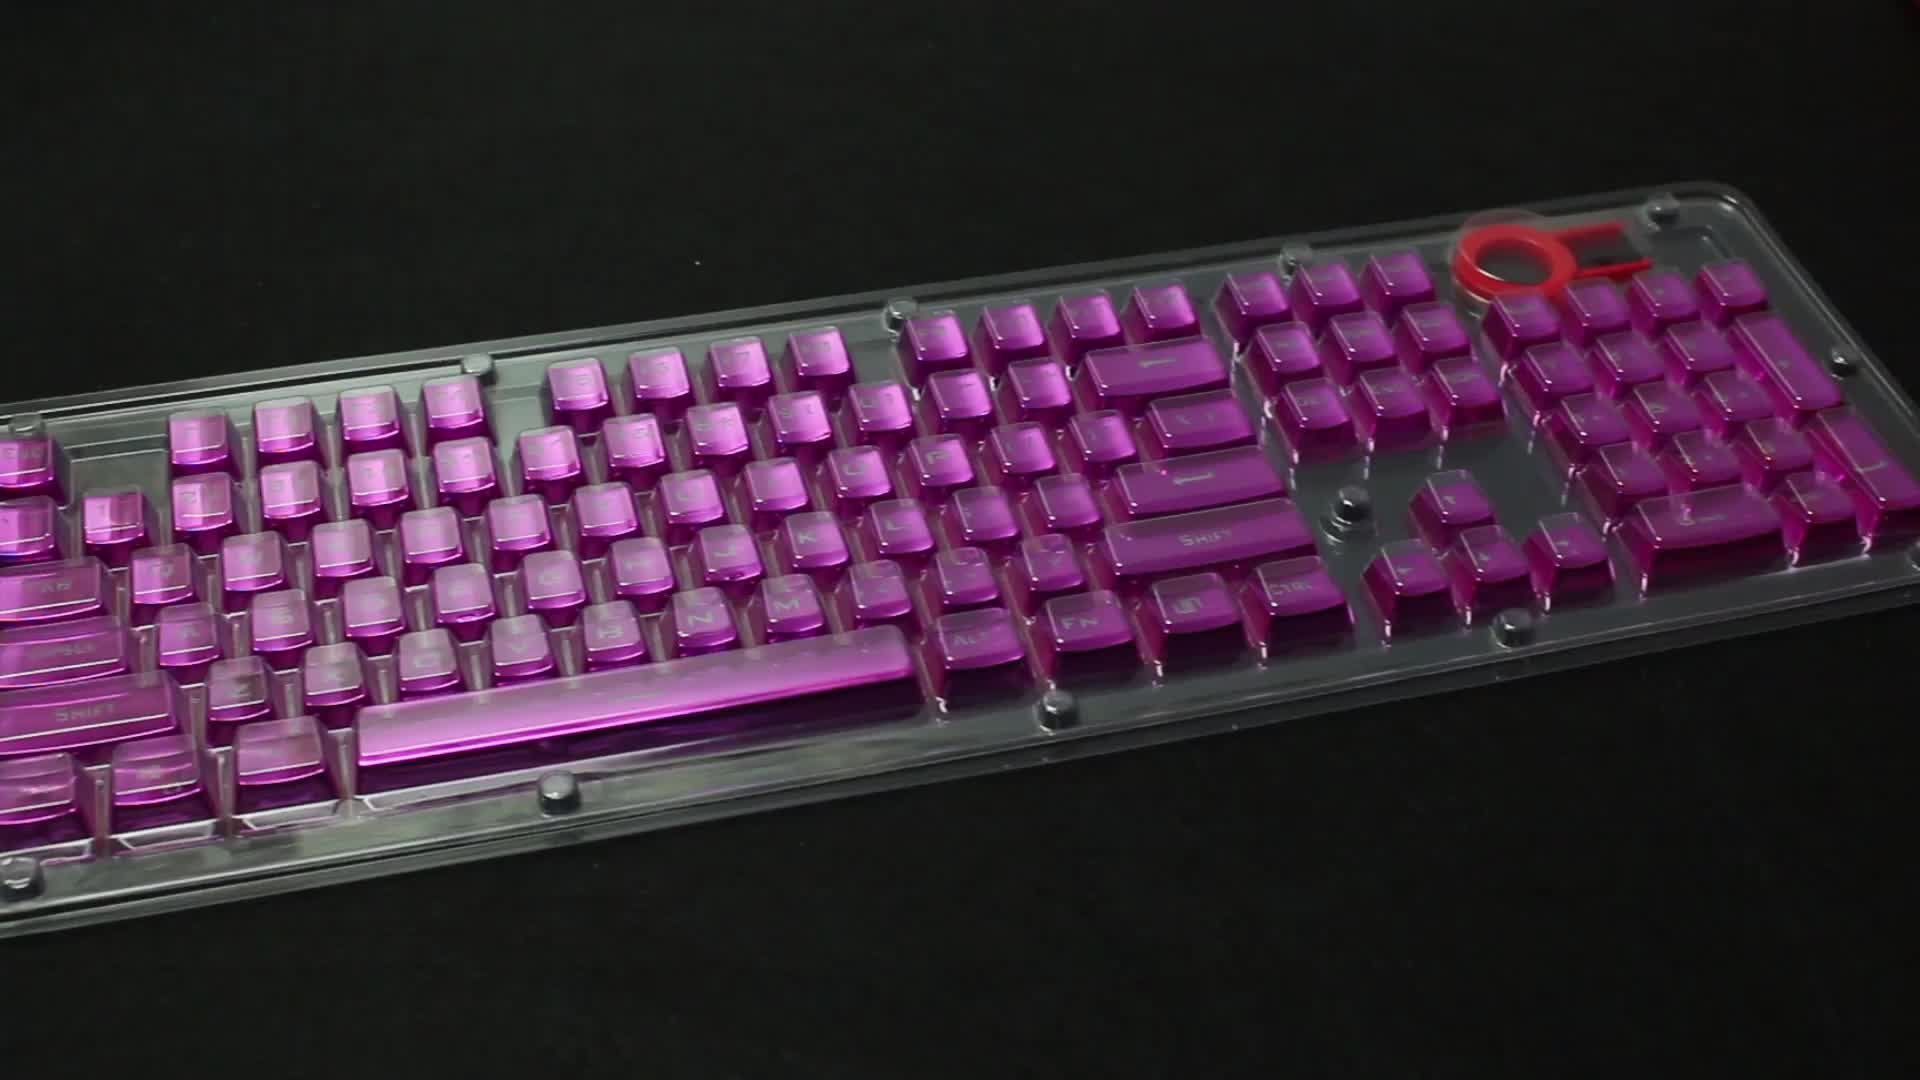 High Quality Multicolor PBT 104 keys Mechanical Gaming Keycaps For Gamer Game Computer Accessories